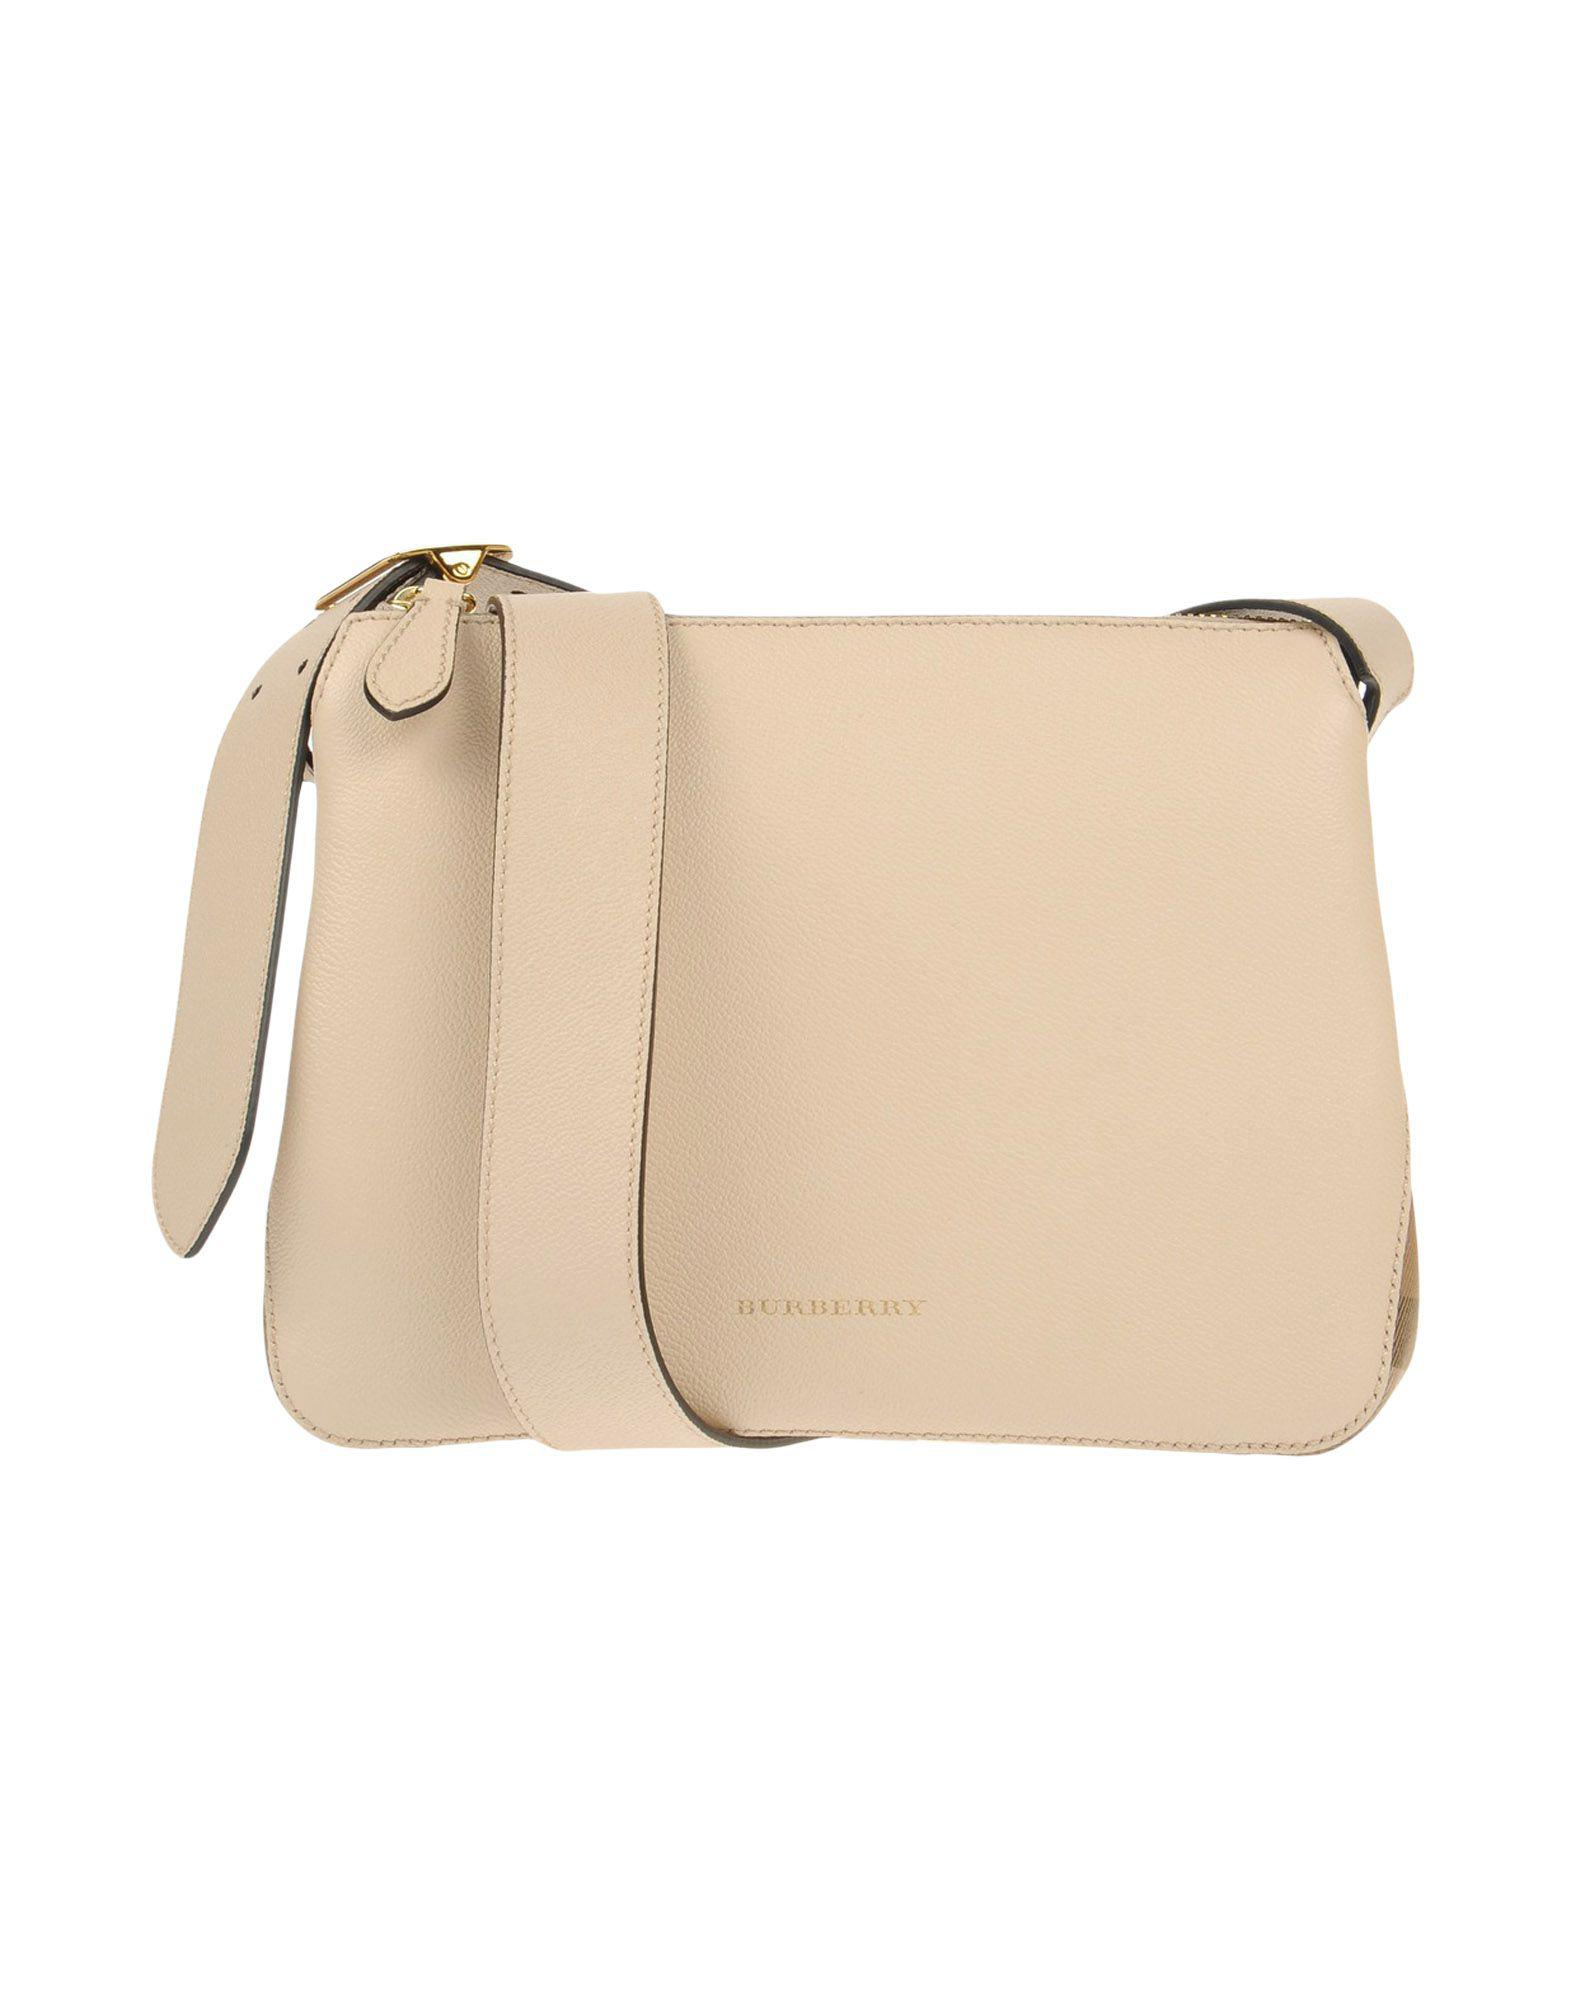 Fontana Milano 1915 HANDBAGS - Cross-body bags su YOOX.COM